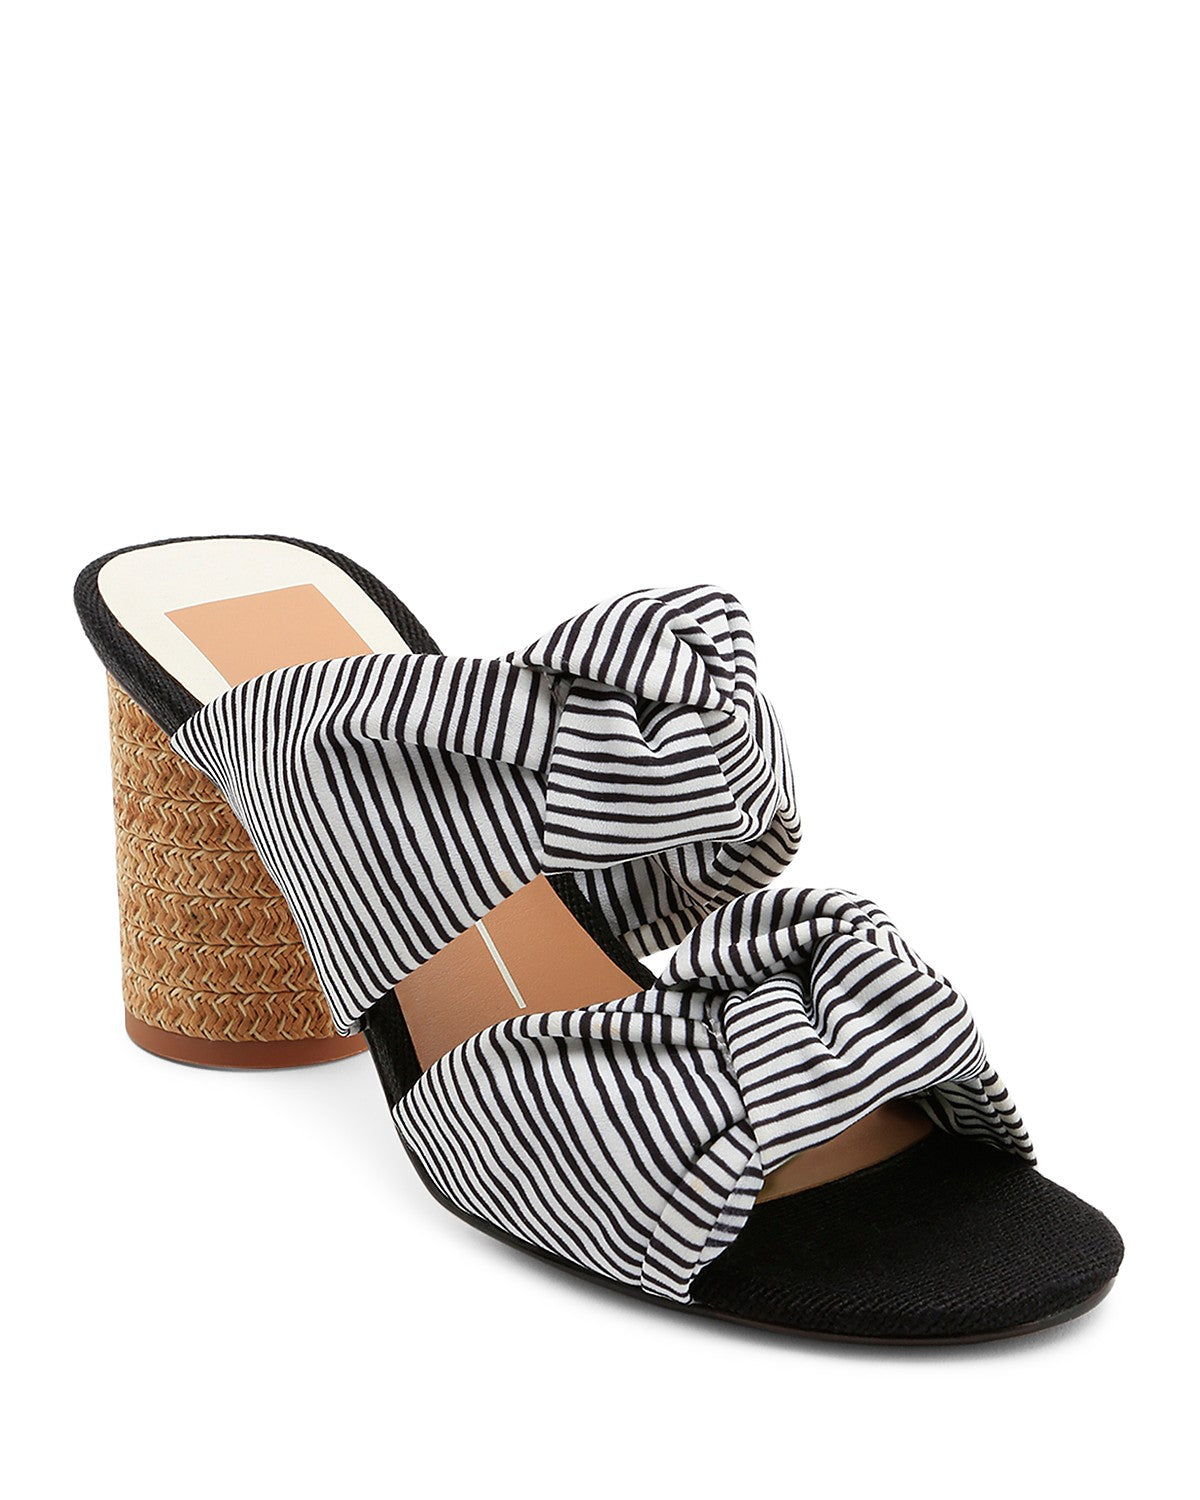 Jene Knotted Block Heel Slide Sandals